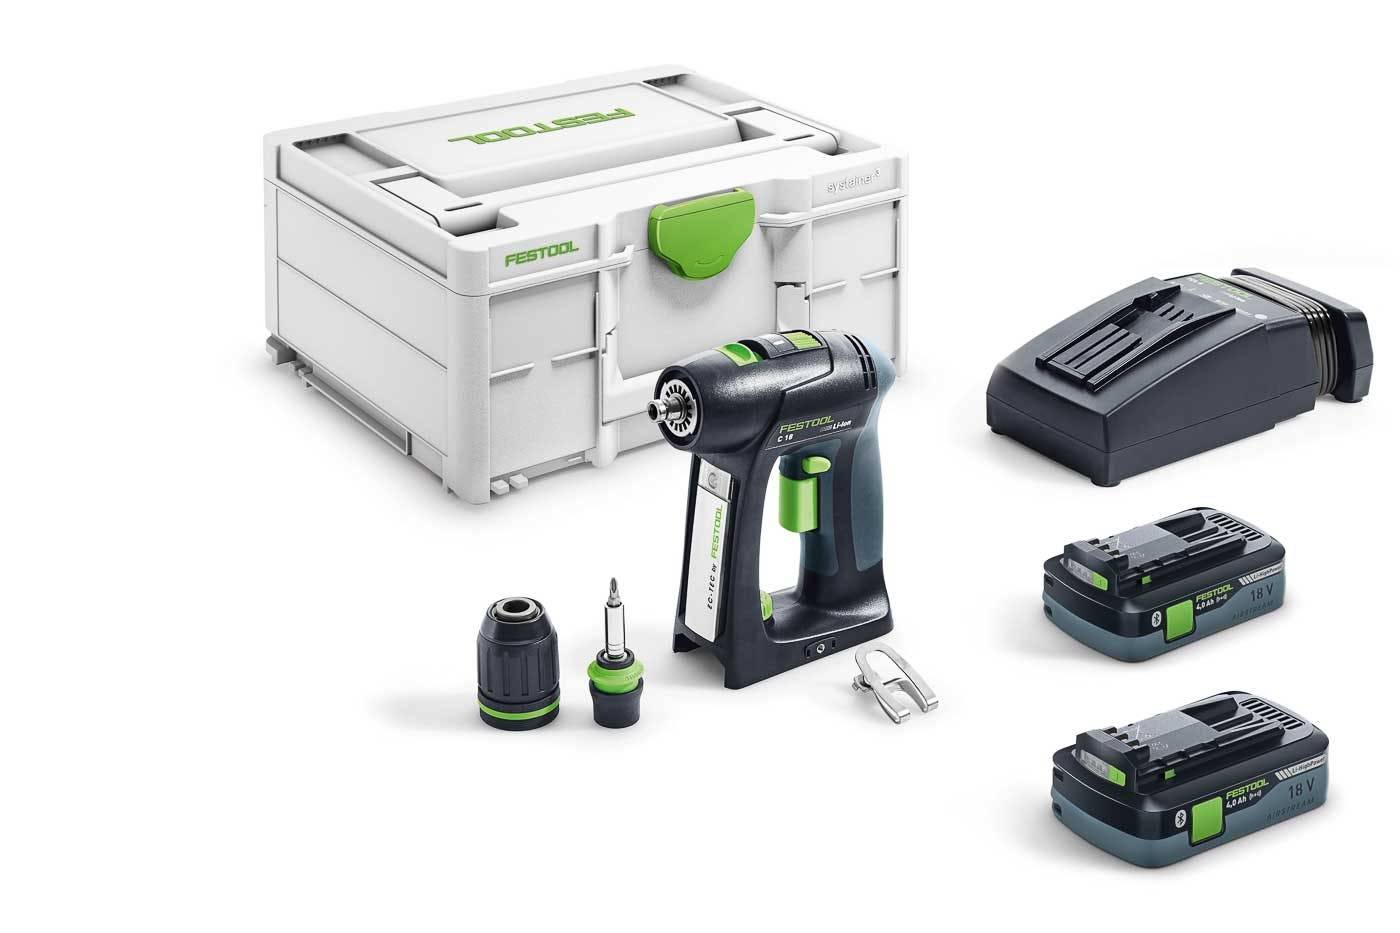 Festool Perceuse-visseuse sans fil C 18 HPC-Plus + 2 batteries 4Ah + chargeur rapide + systainer